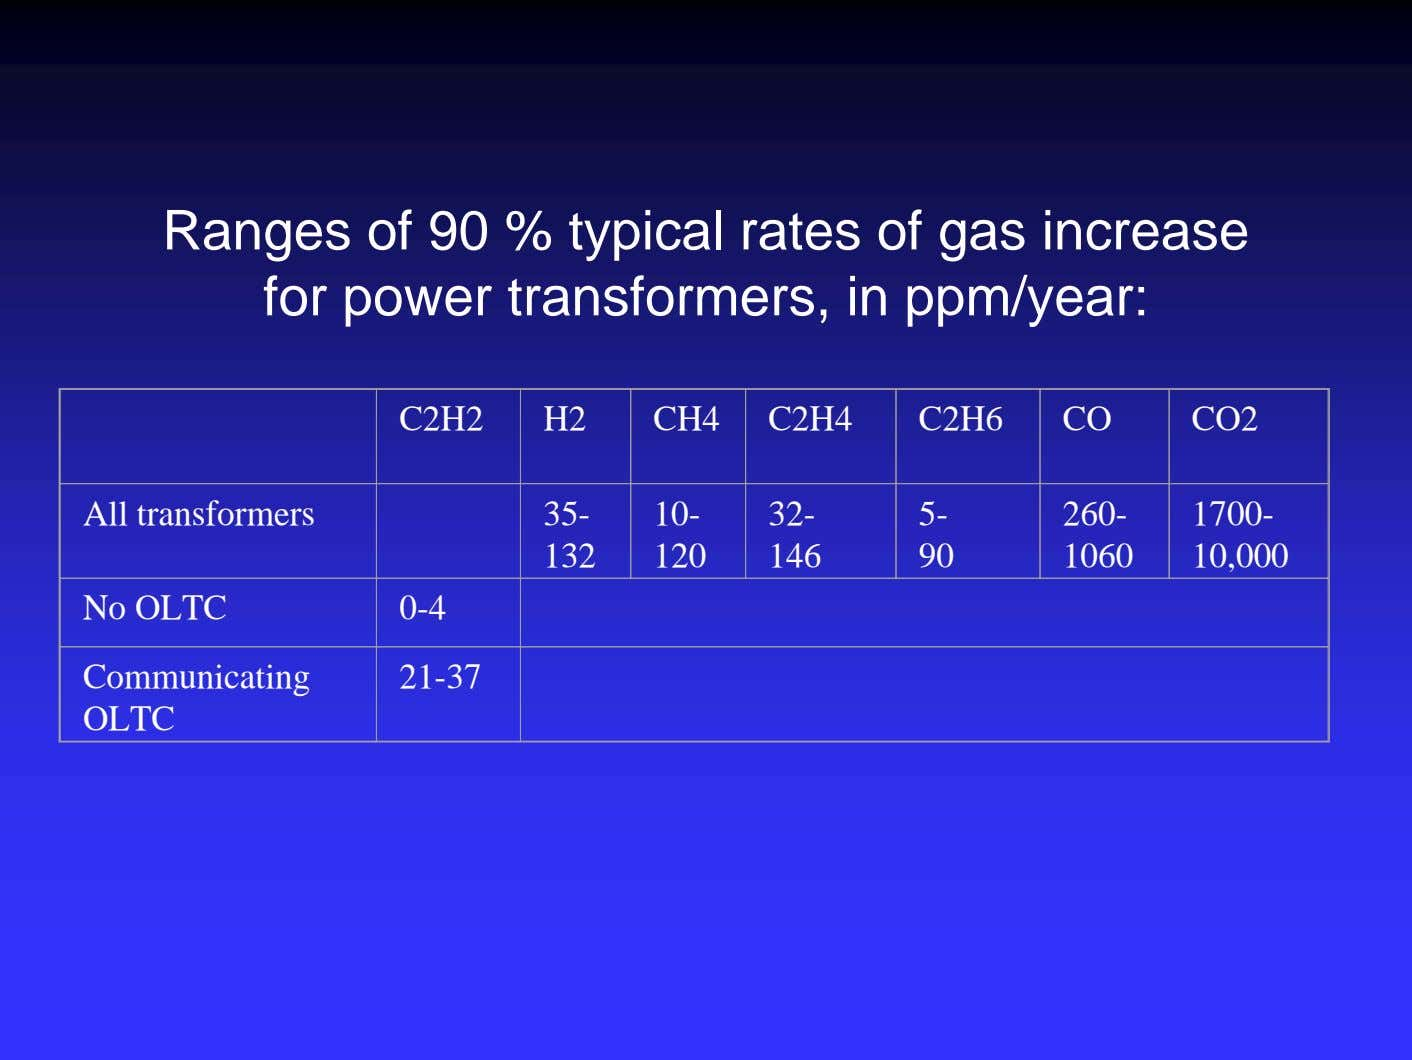 Ranges of 90 % typical rates of gas increase for power transformers, in ppm/year: C2H2